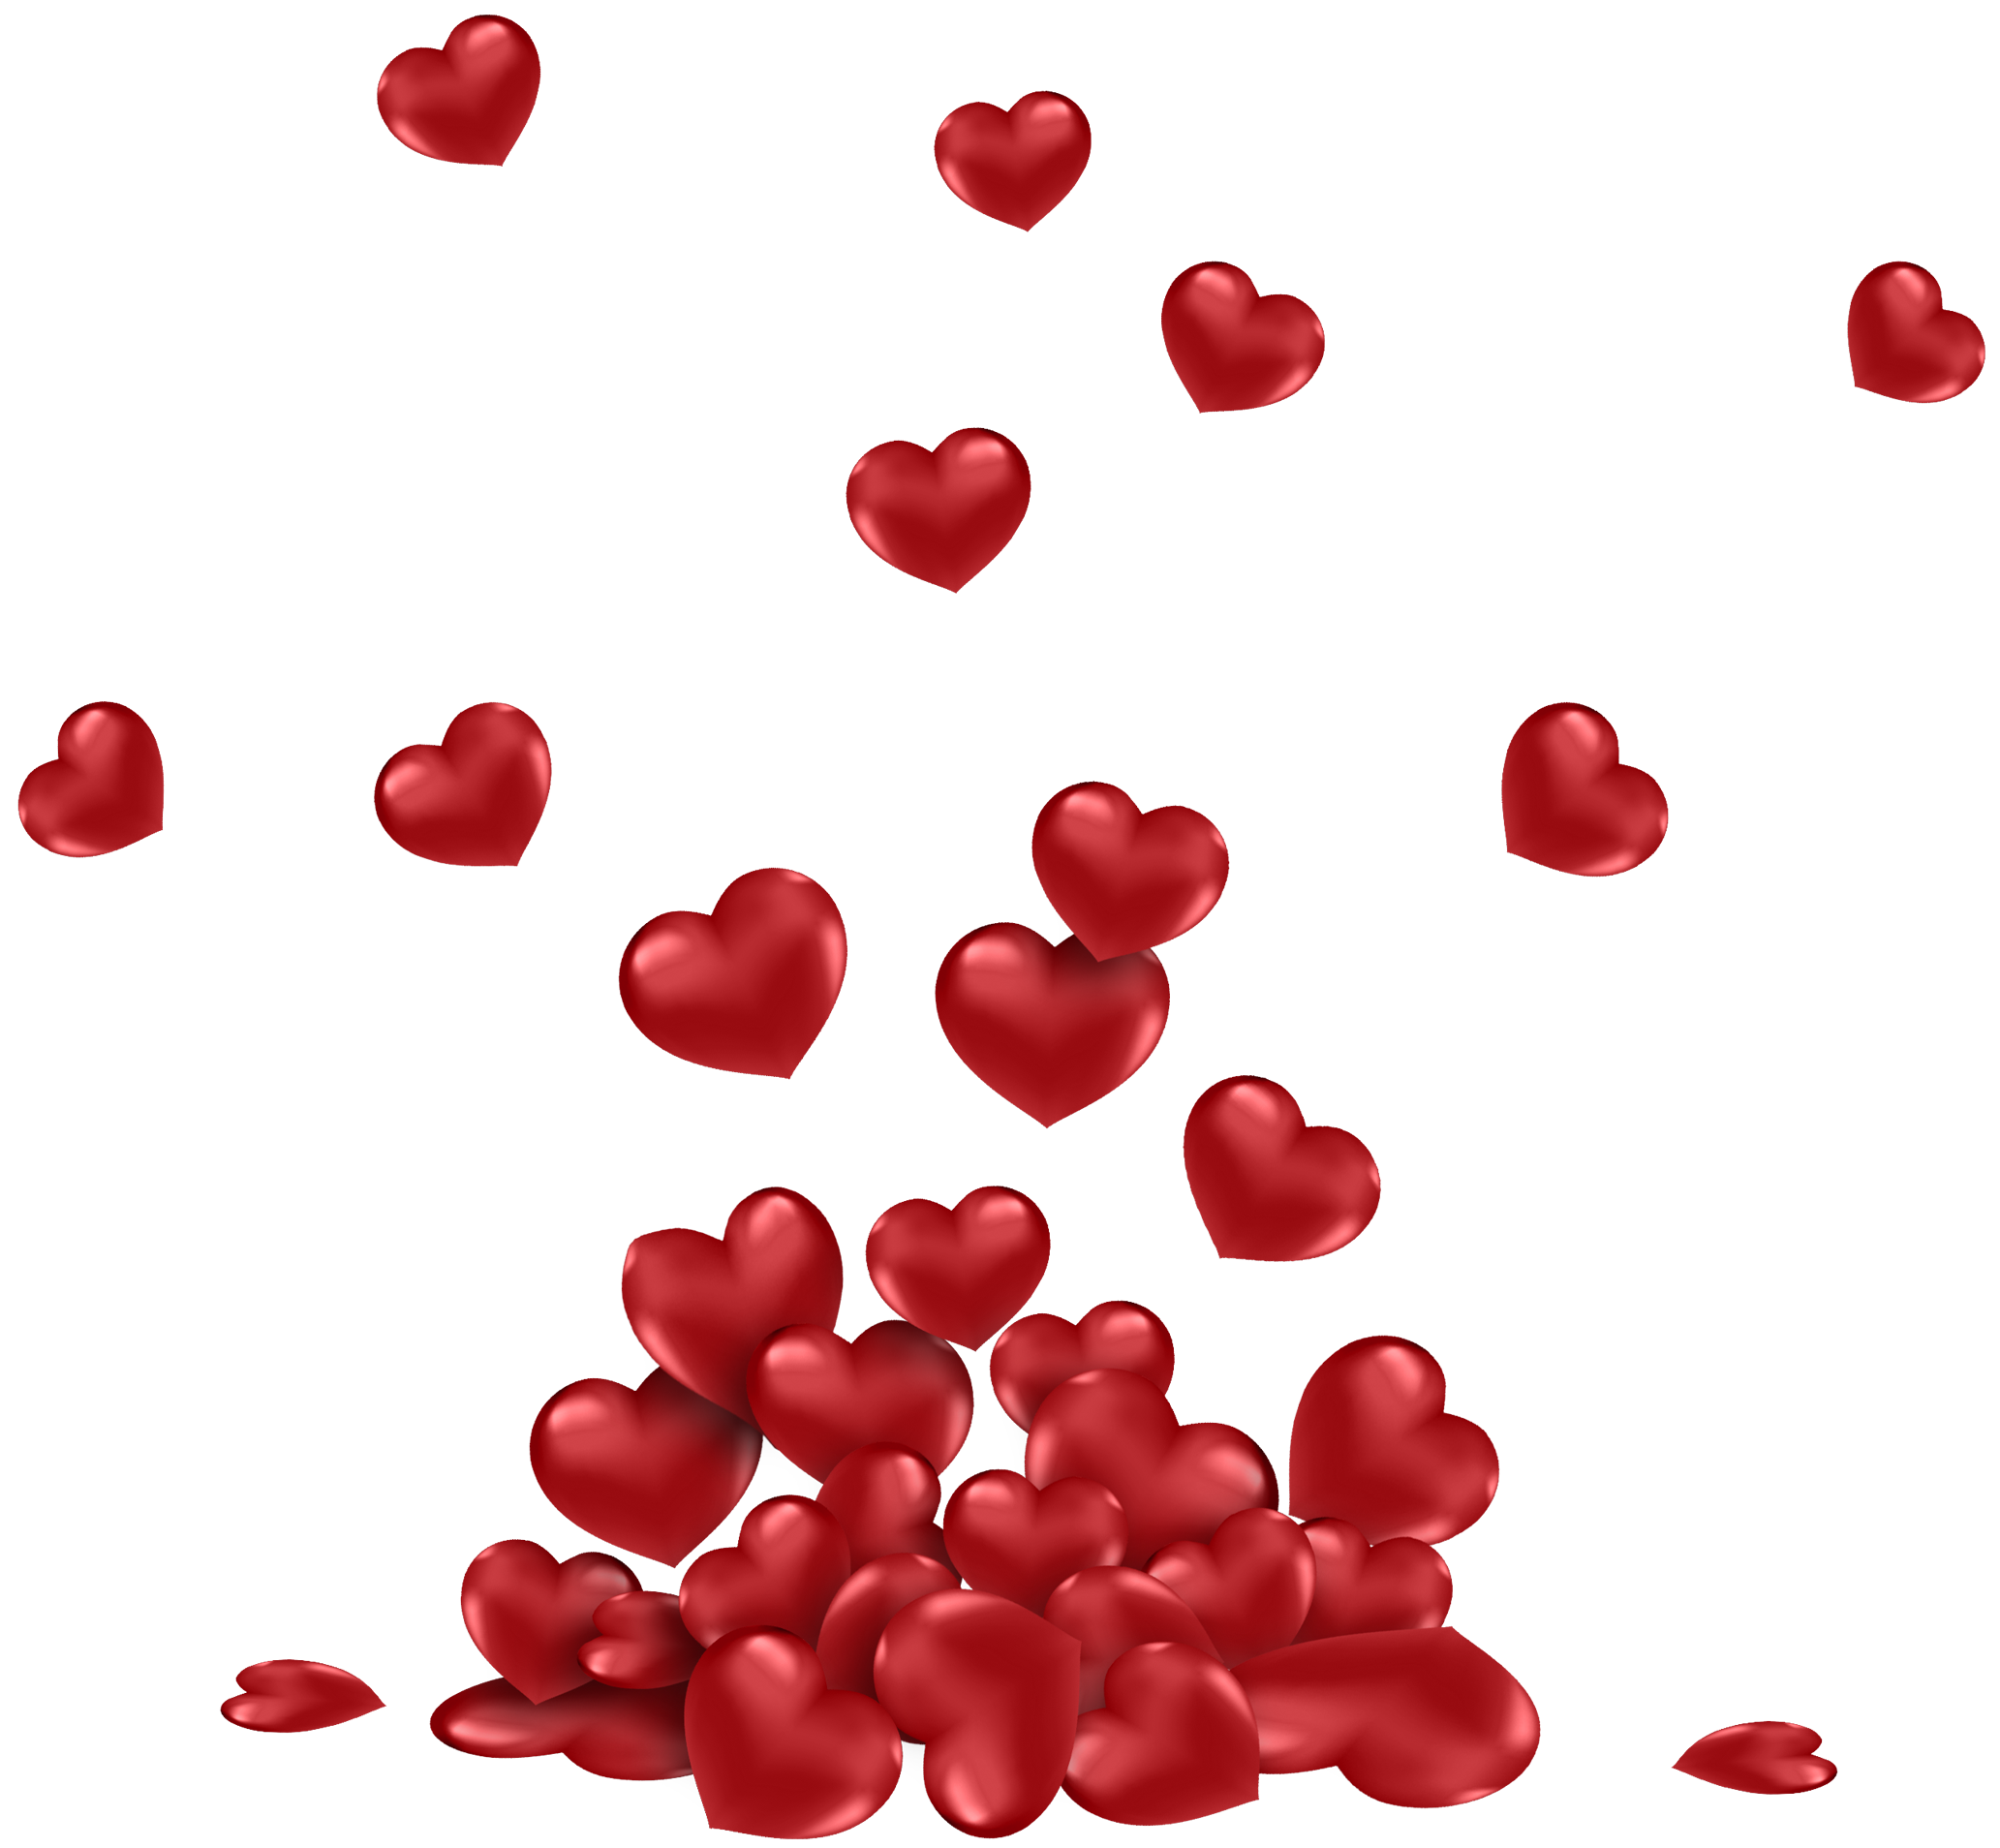 Organix red pepper review. Little hearts png